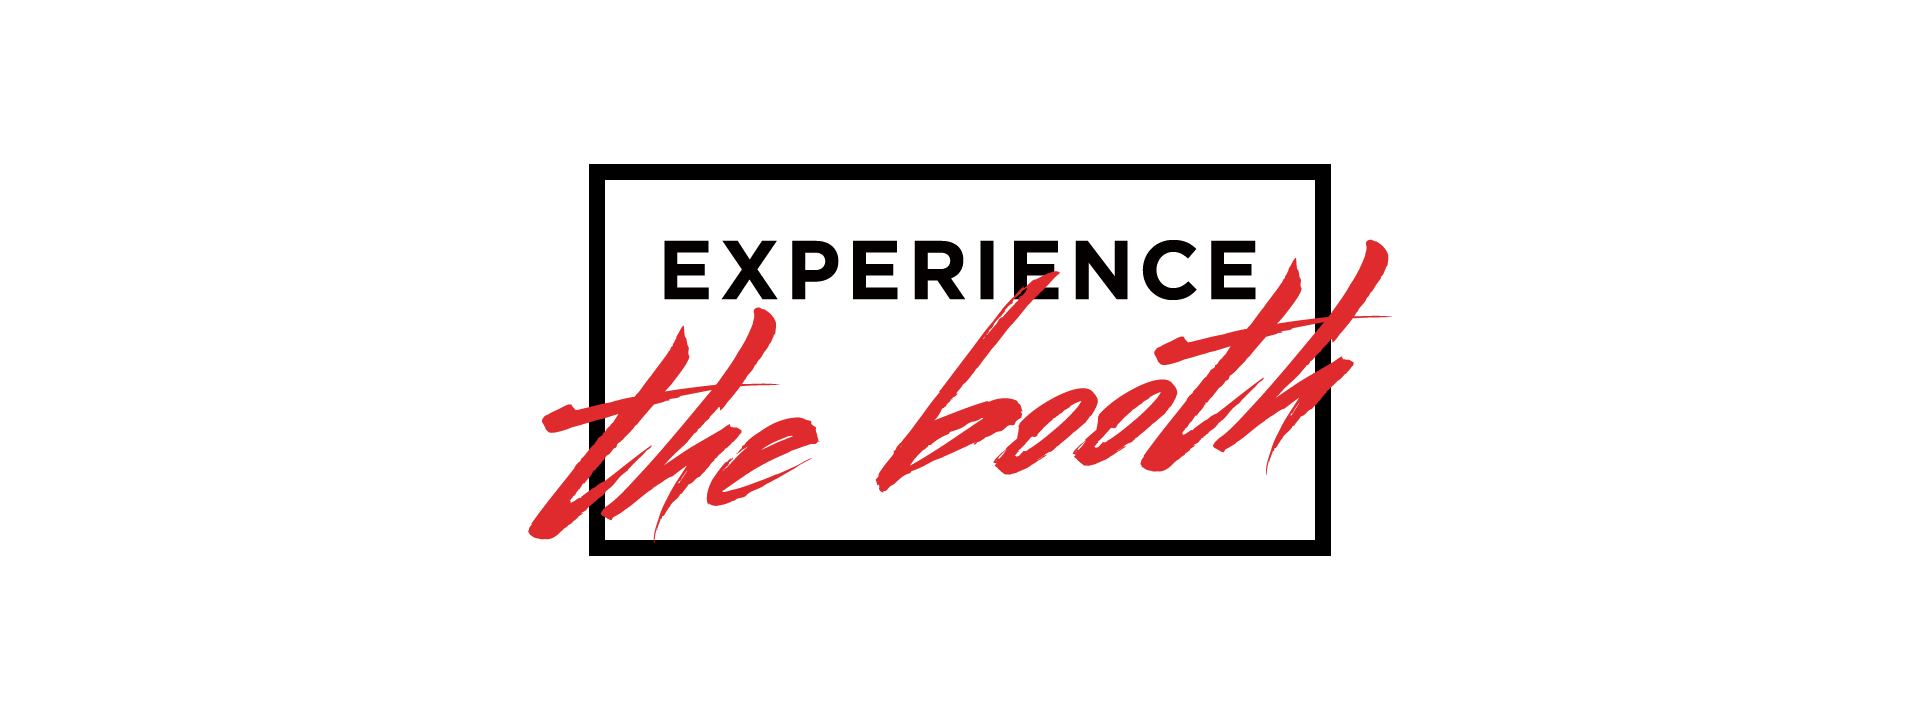 Experience the Booth